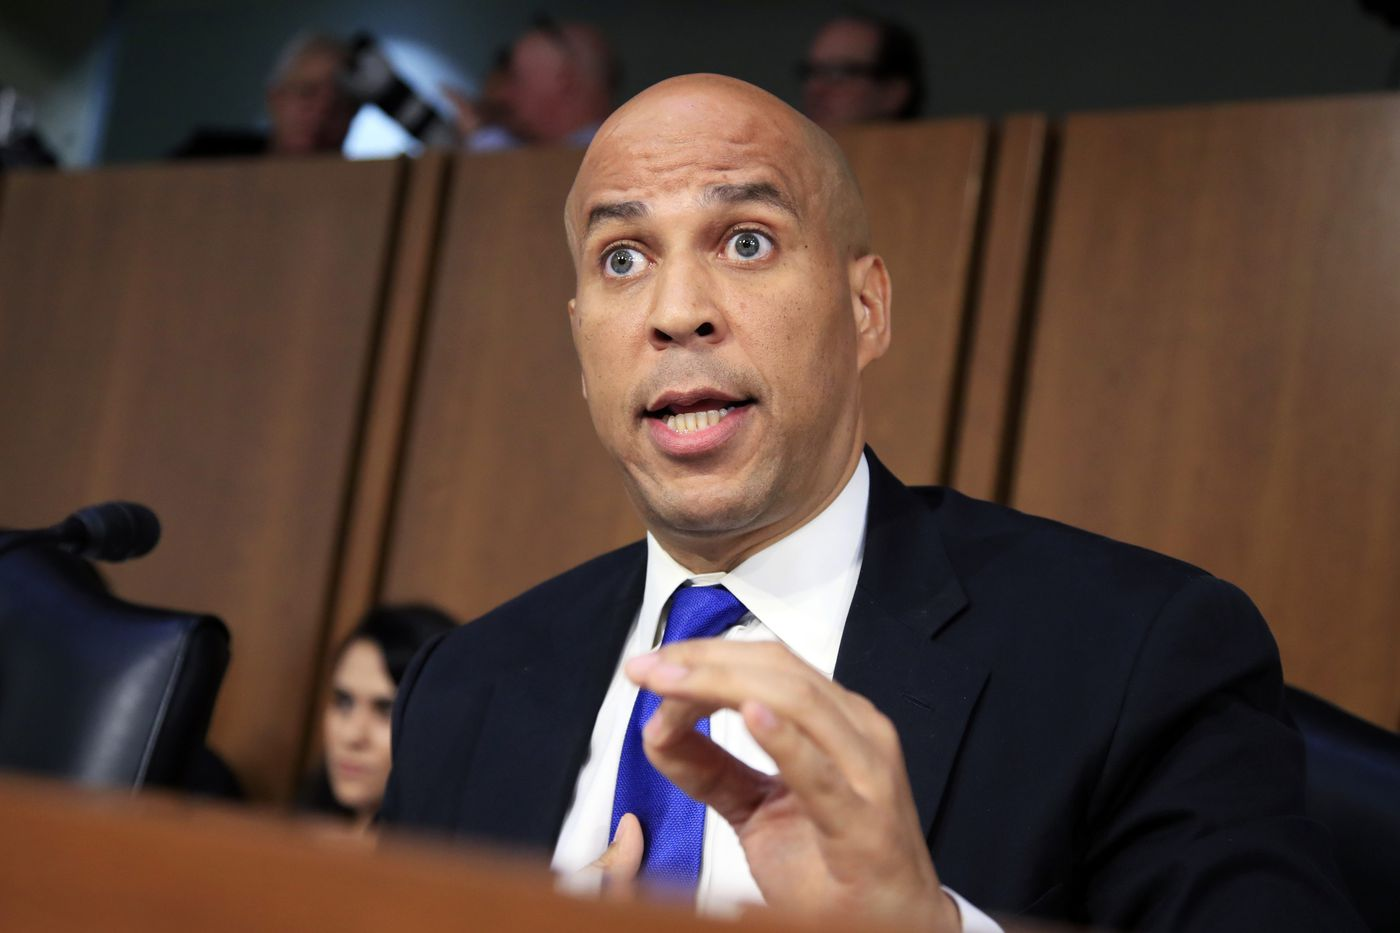 In 1992, Cory Booker admitted to groping a high school classmate and issued a call for sexual respect